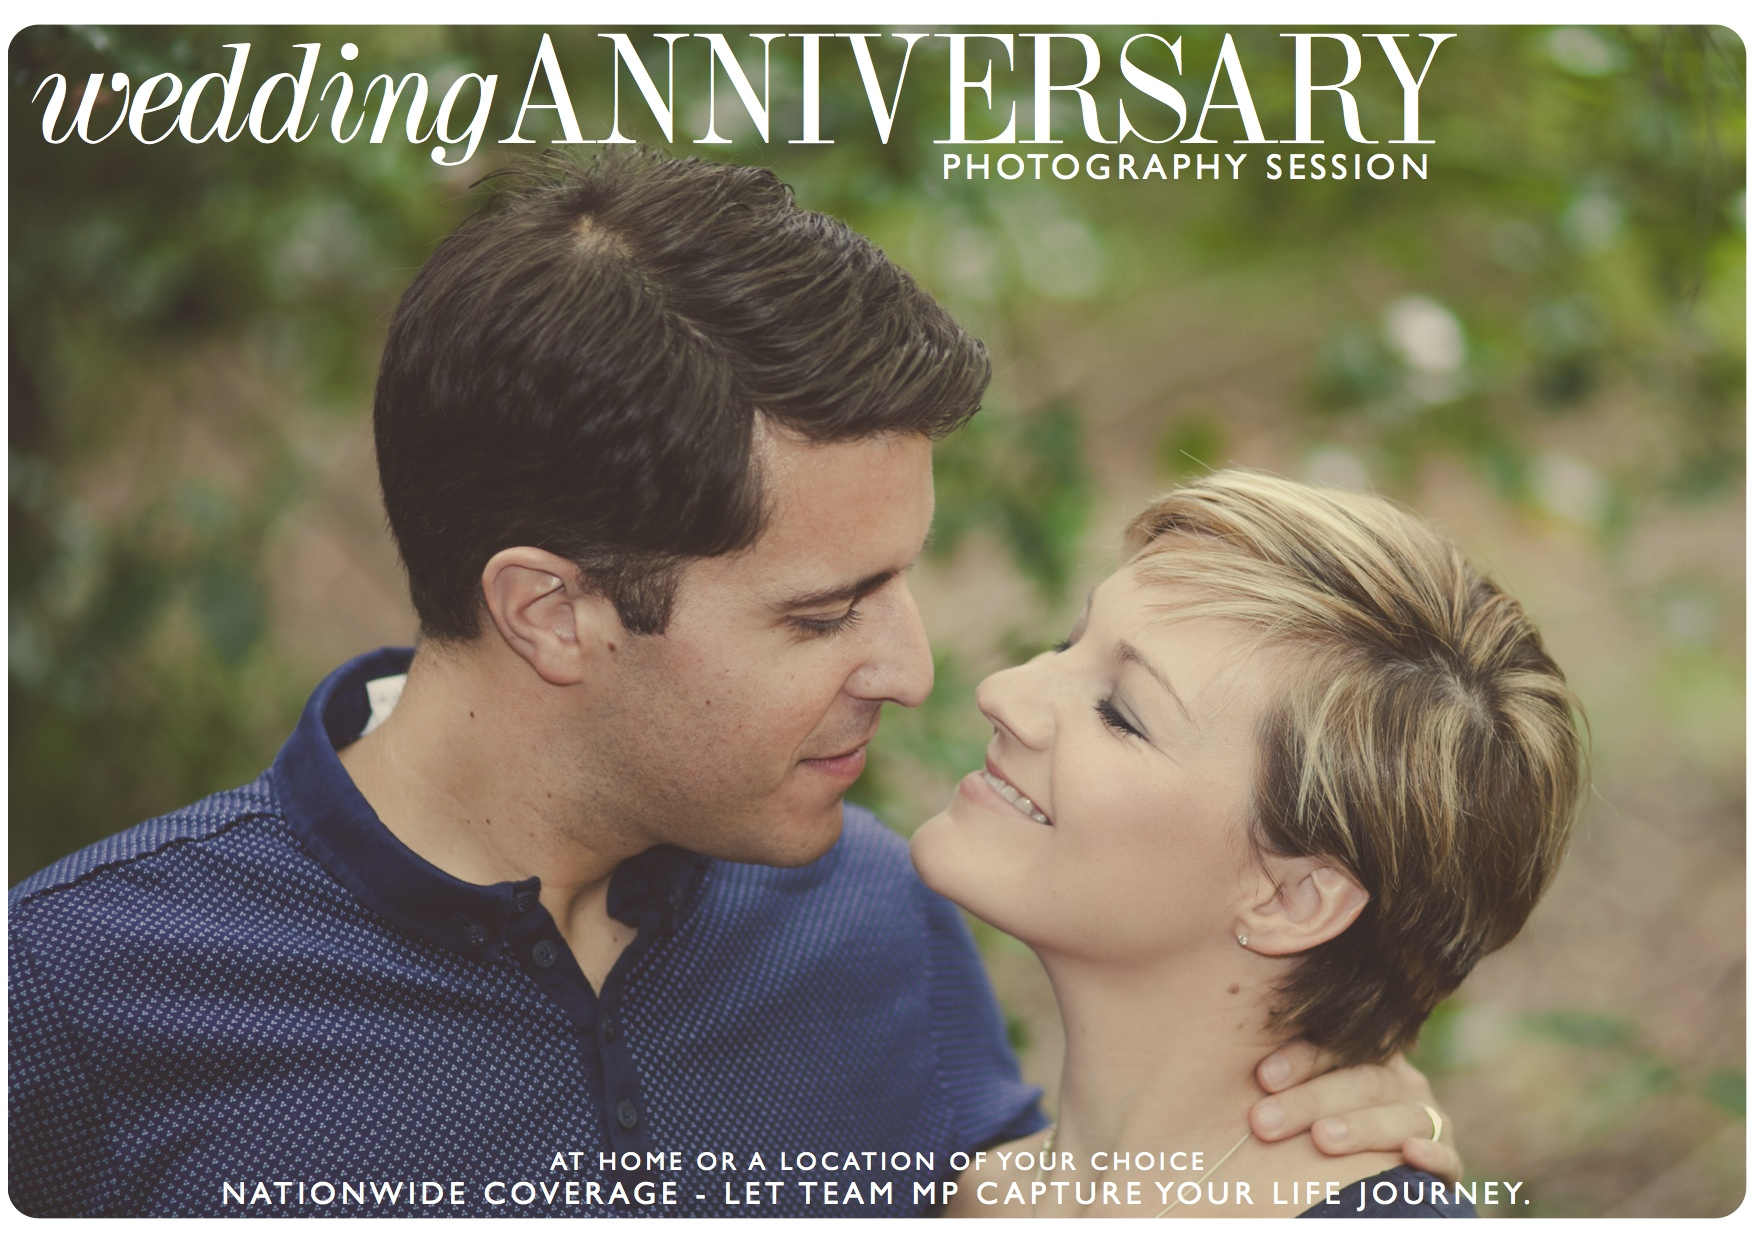 Happy Wedding Anniversary -  click the image above to view additional information.